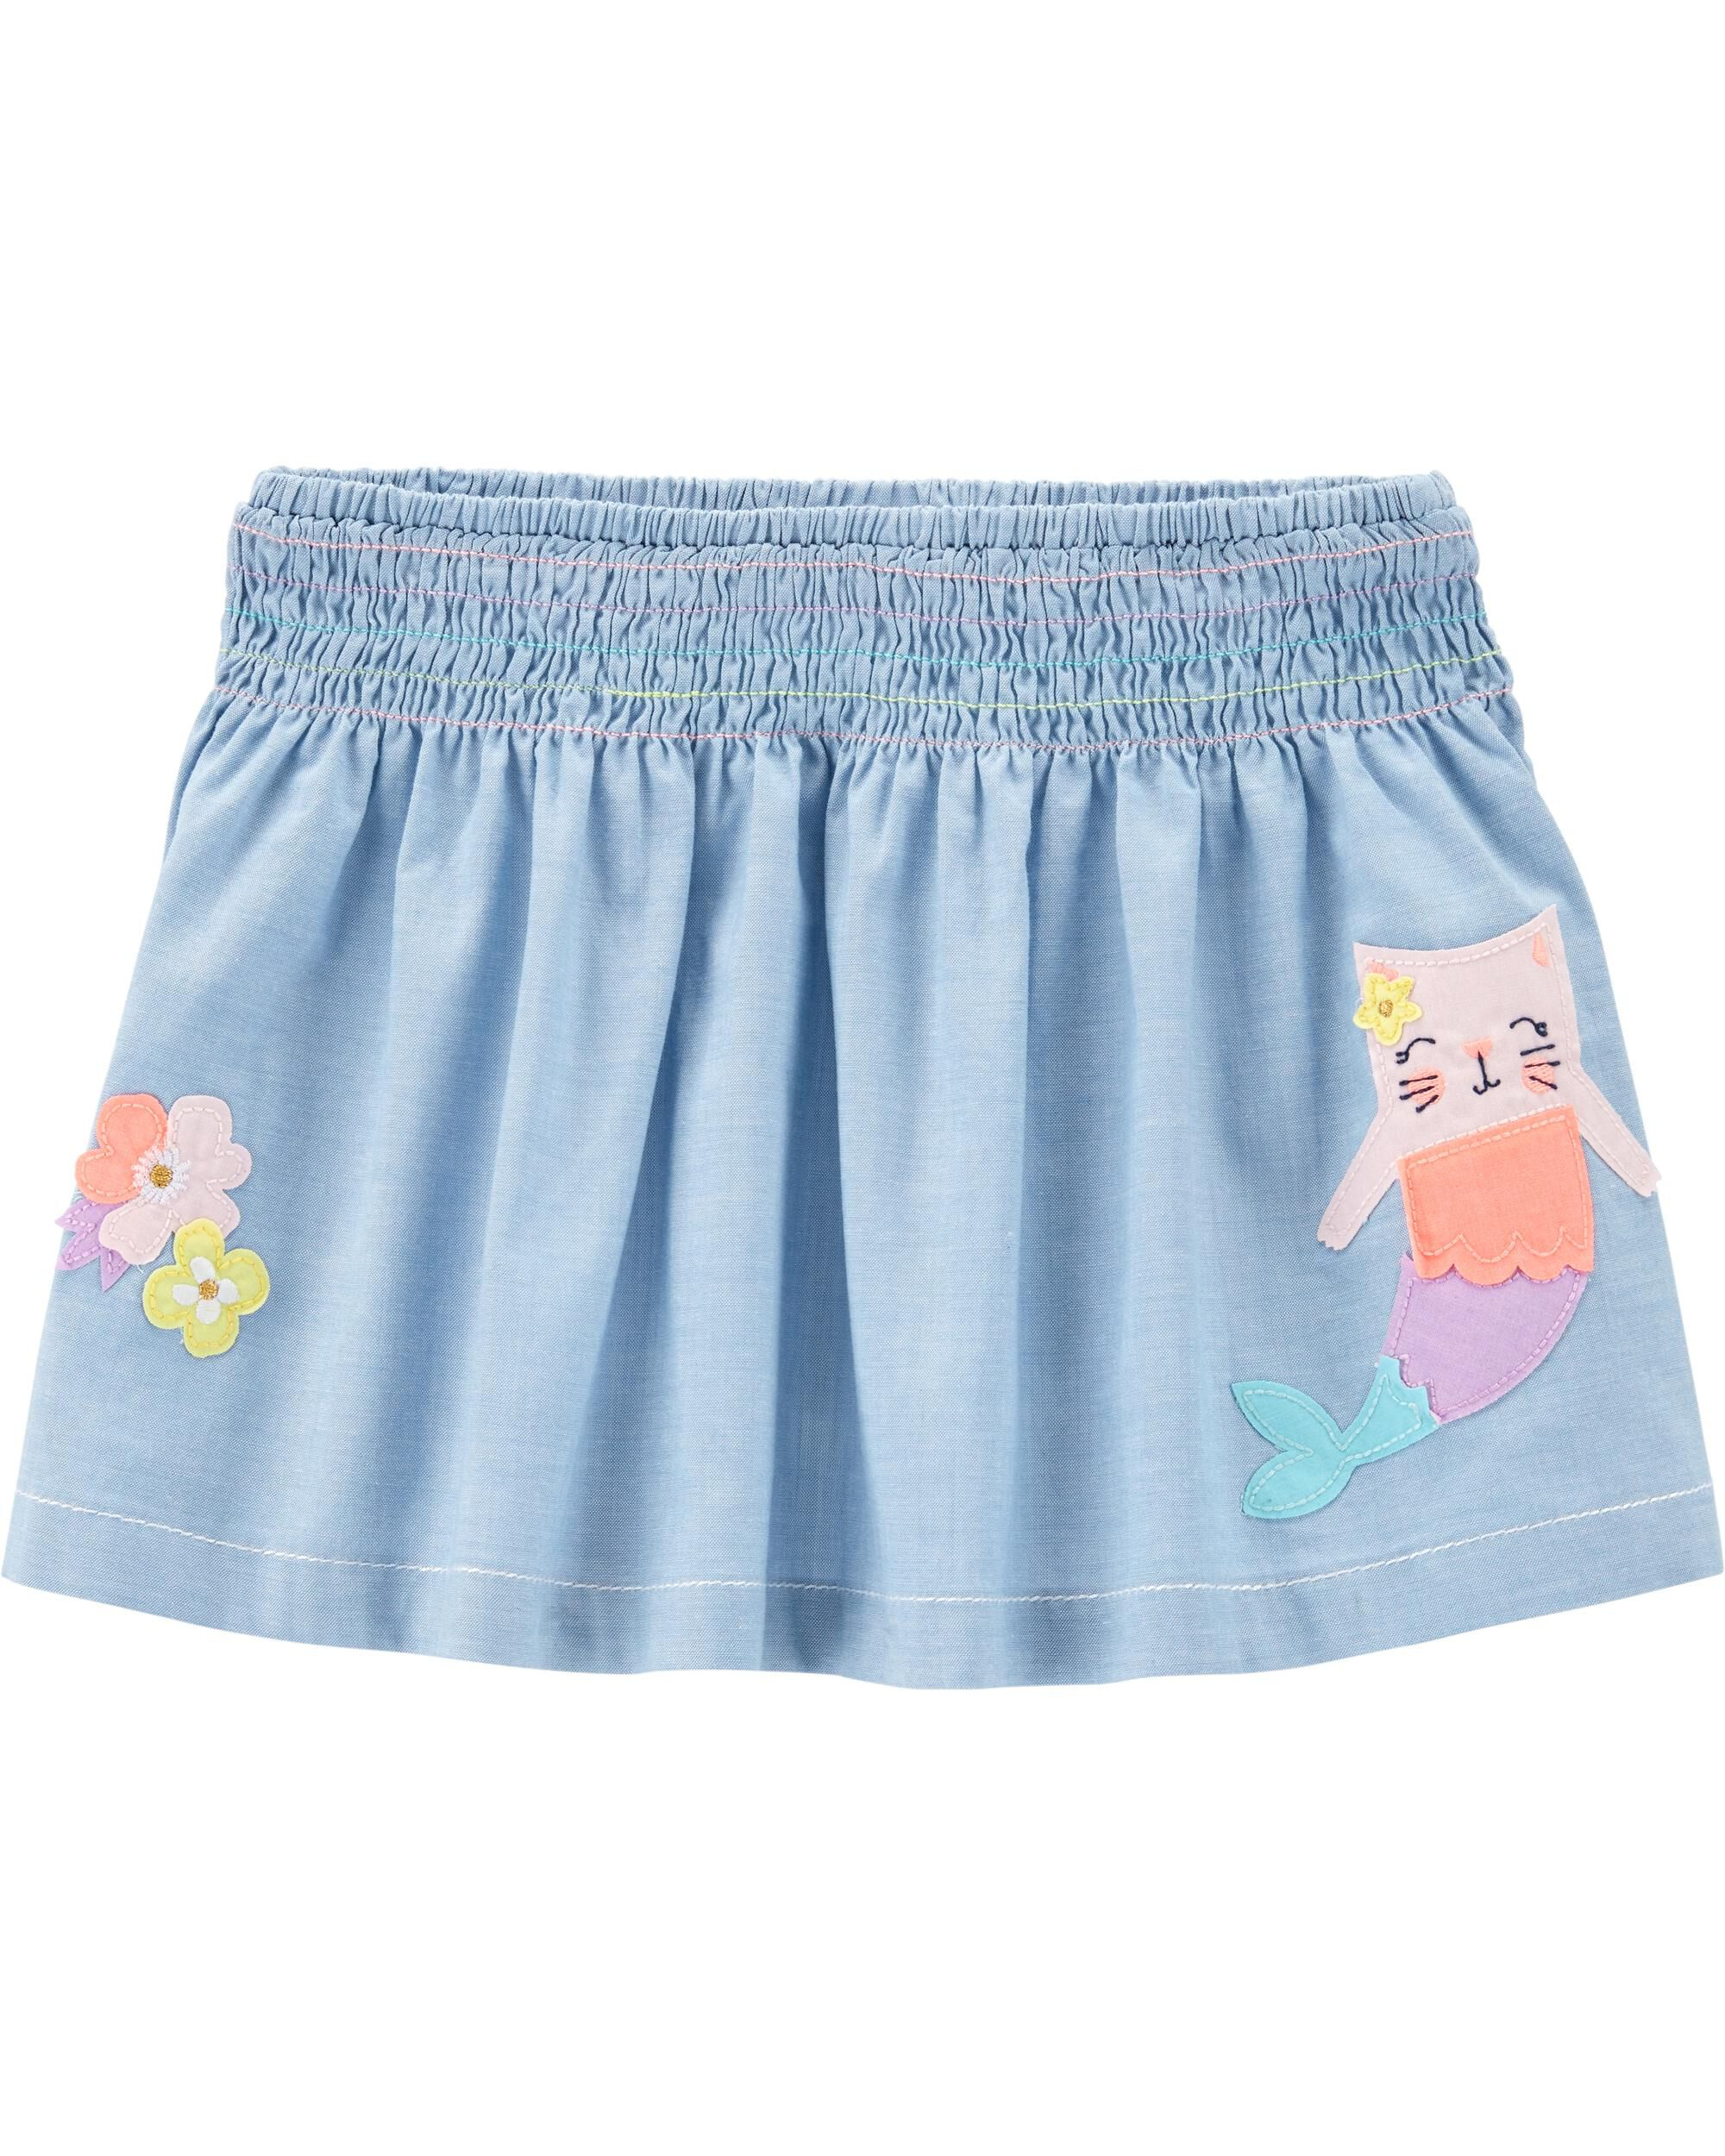 *Clearance*  Cat Mermaid Skort